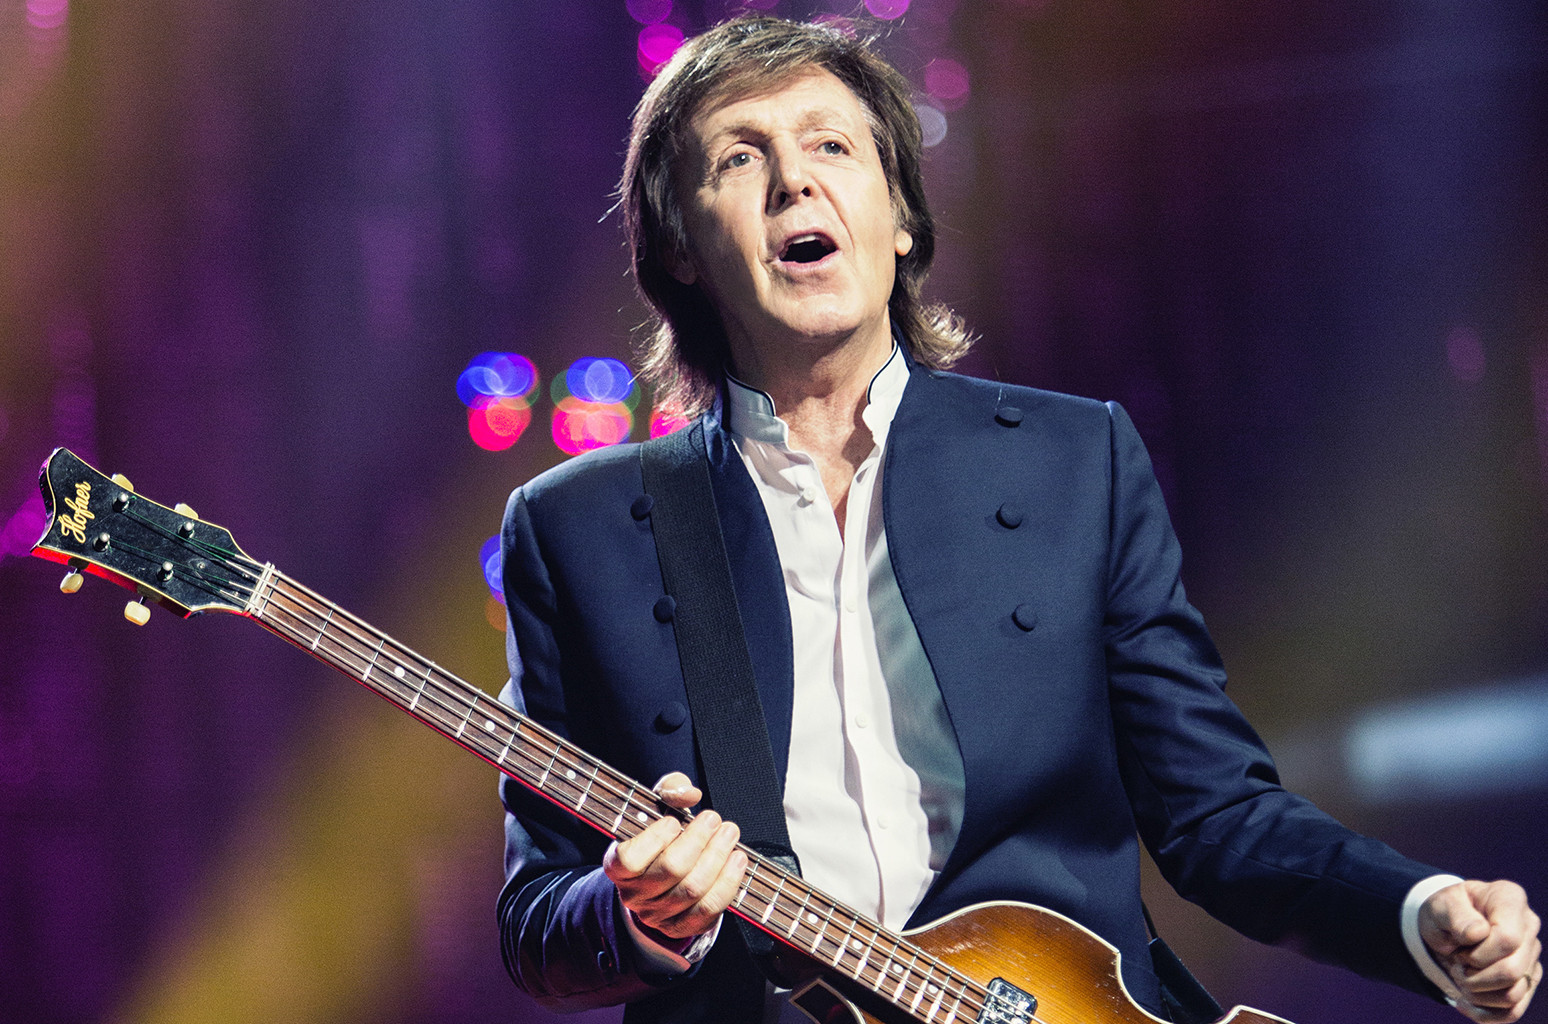 Paul McCartney Out There tour 2015